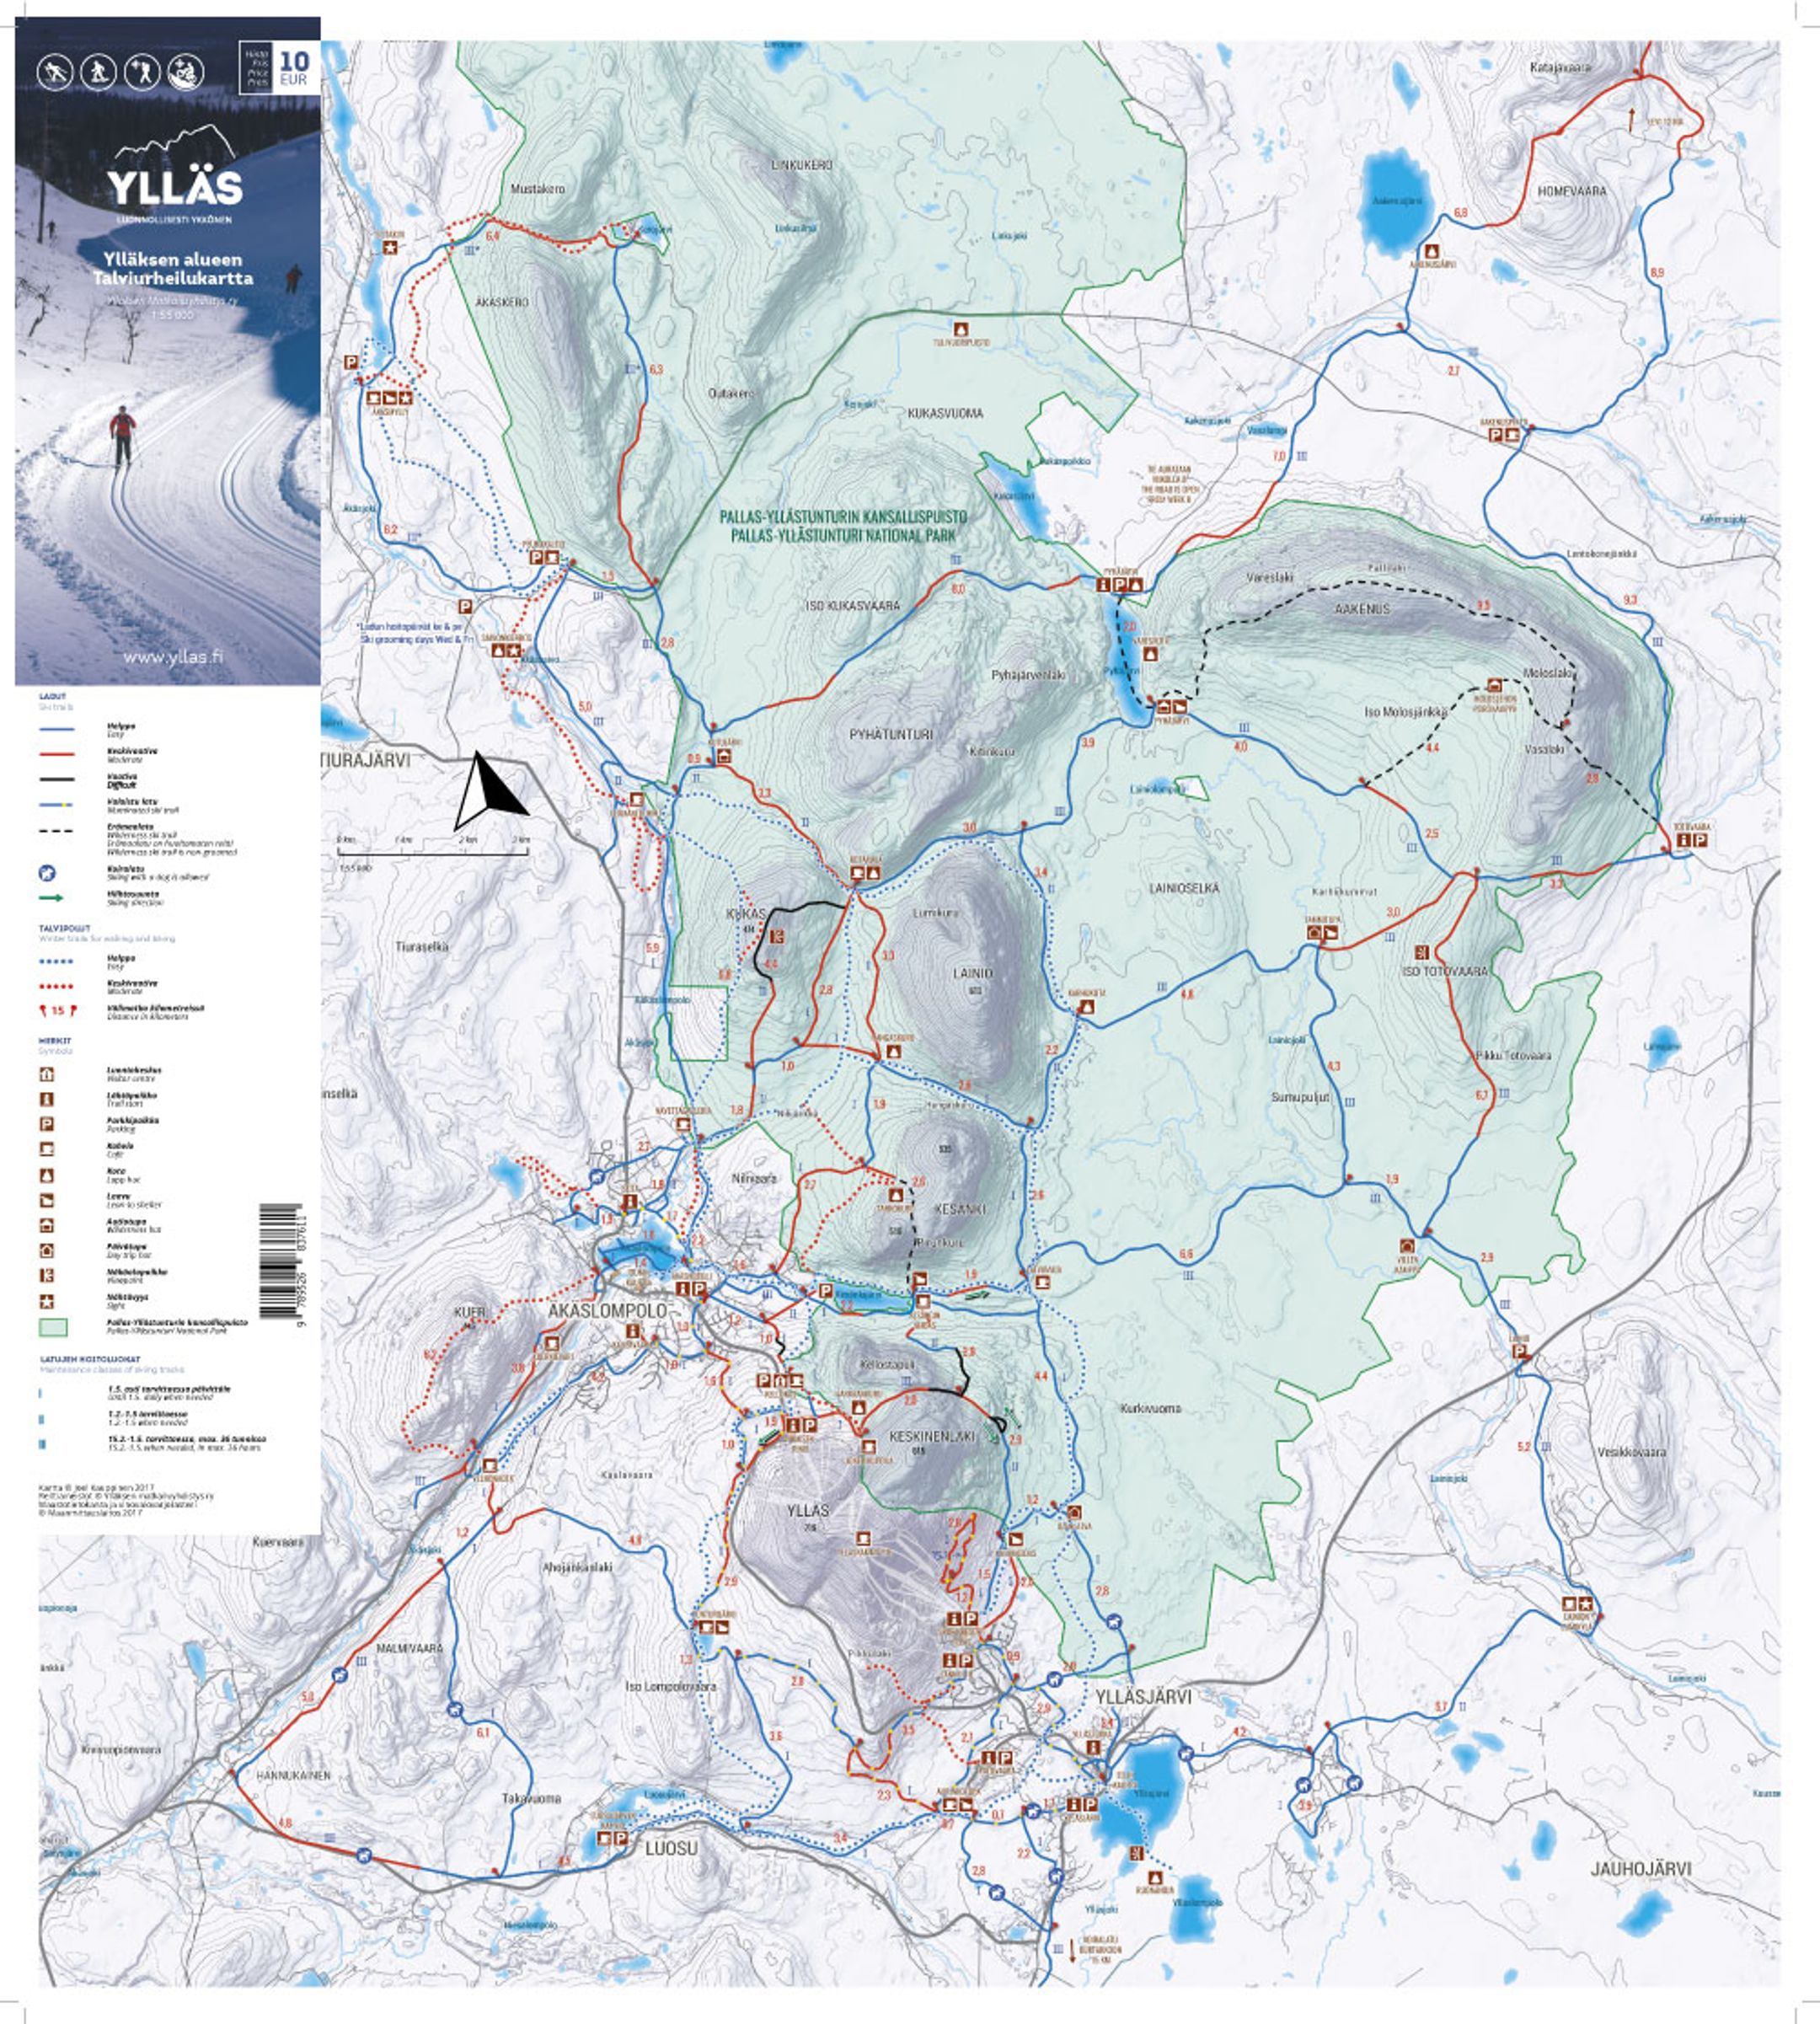 Yllas ski-resort-trail-map Finland ripatrip